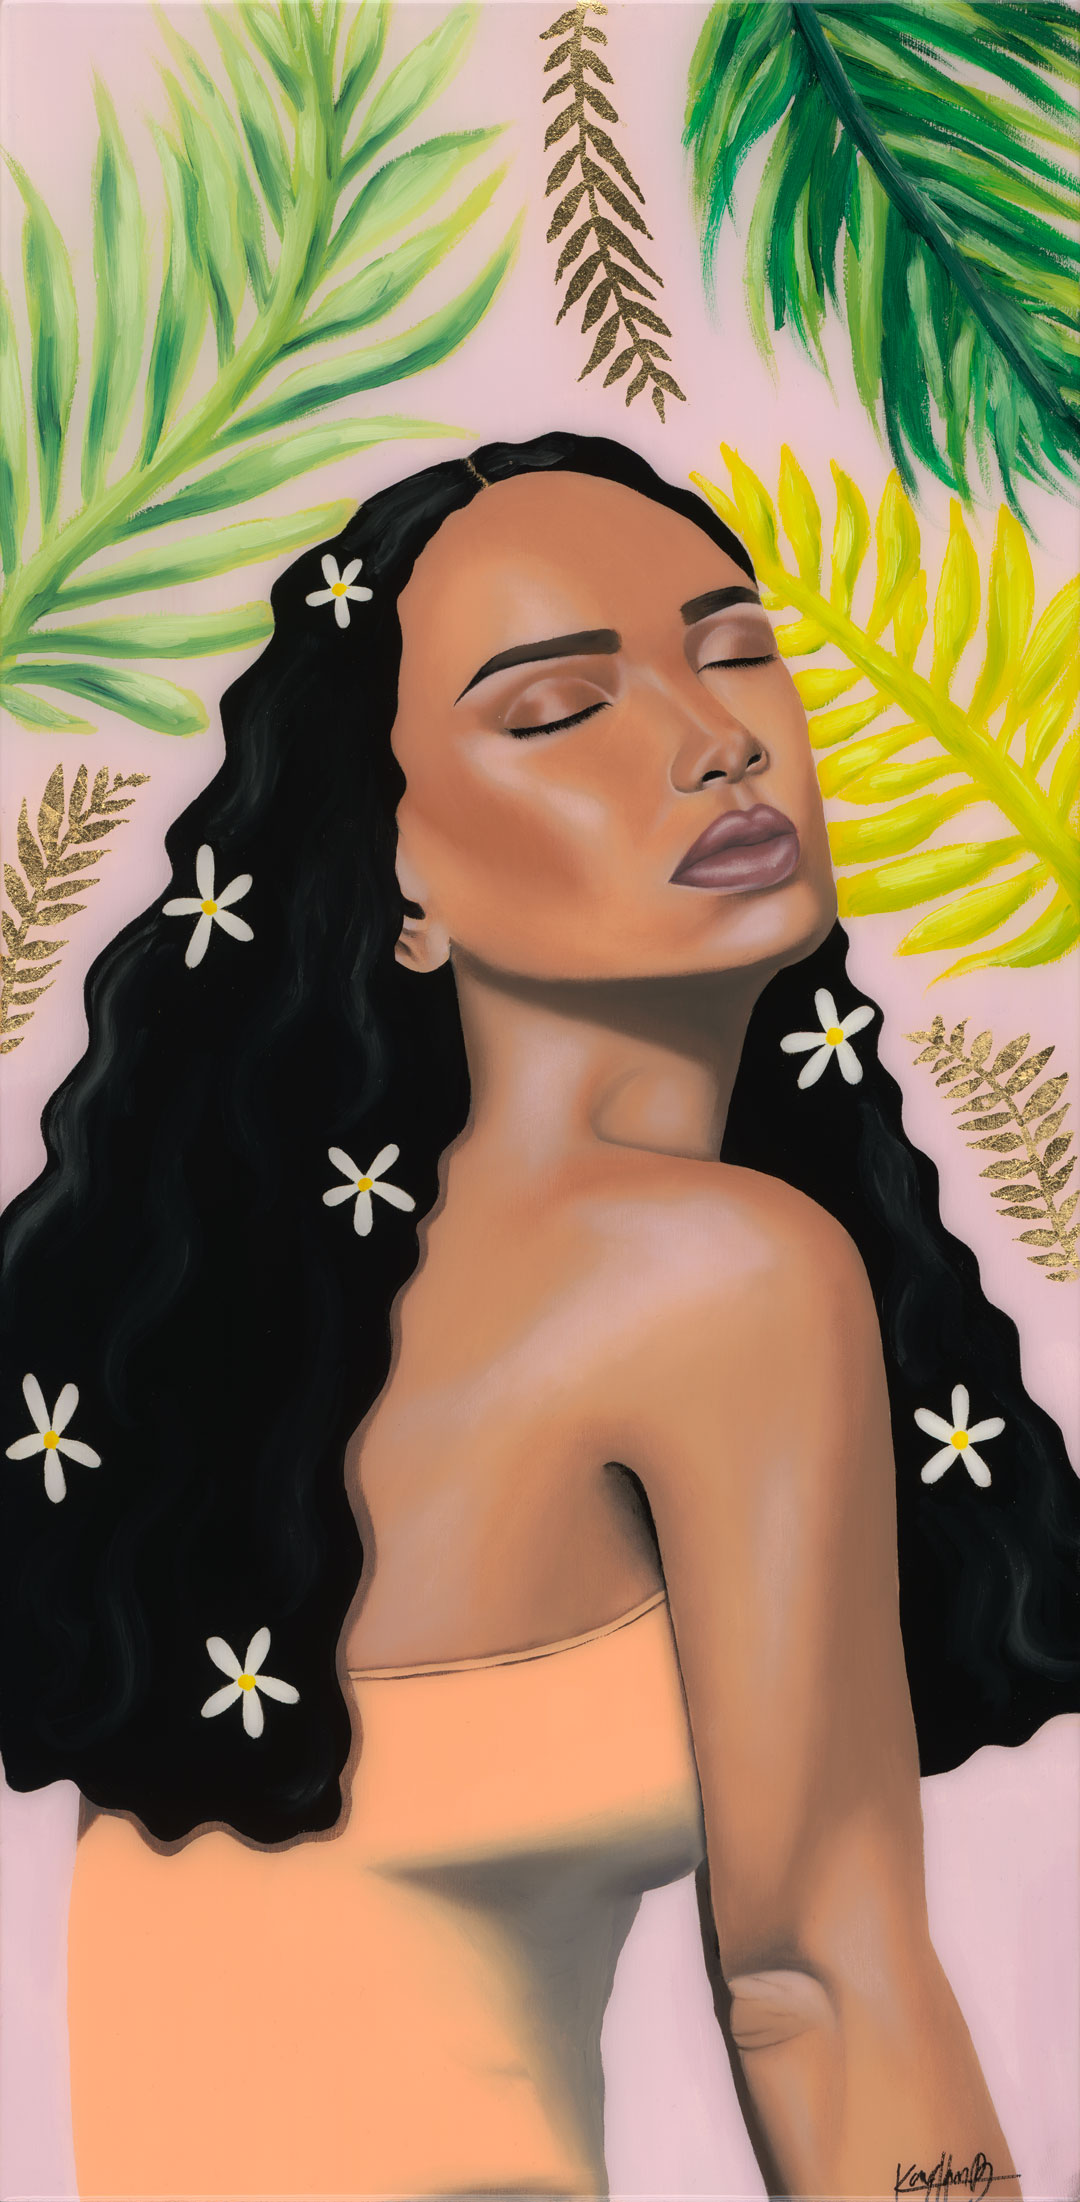 Leilani - Oils, Mixed media, Resin on PanelFramed12x24 in2018$625For inquiries, please send an e-mail to kayanhbennett@gmail.com